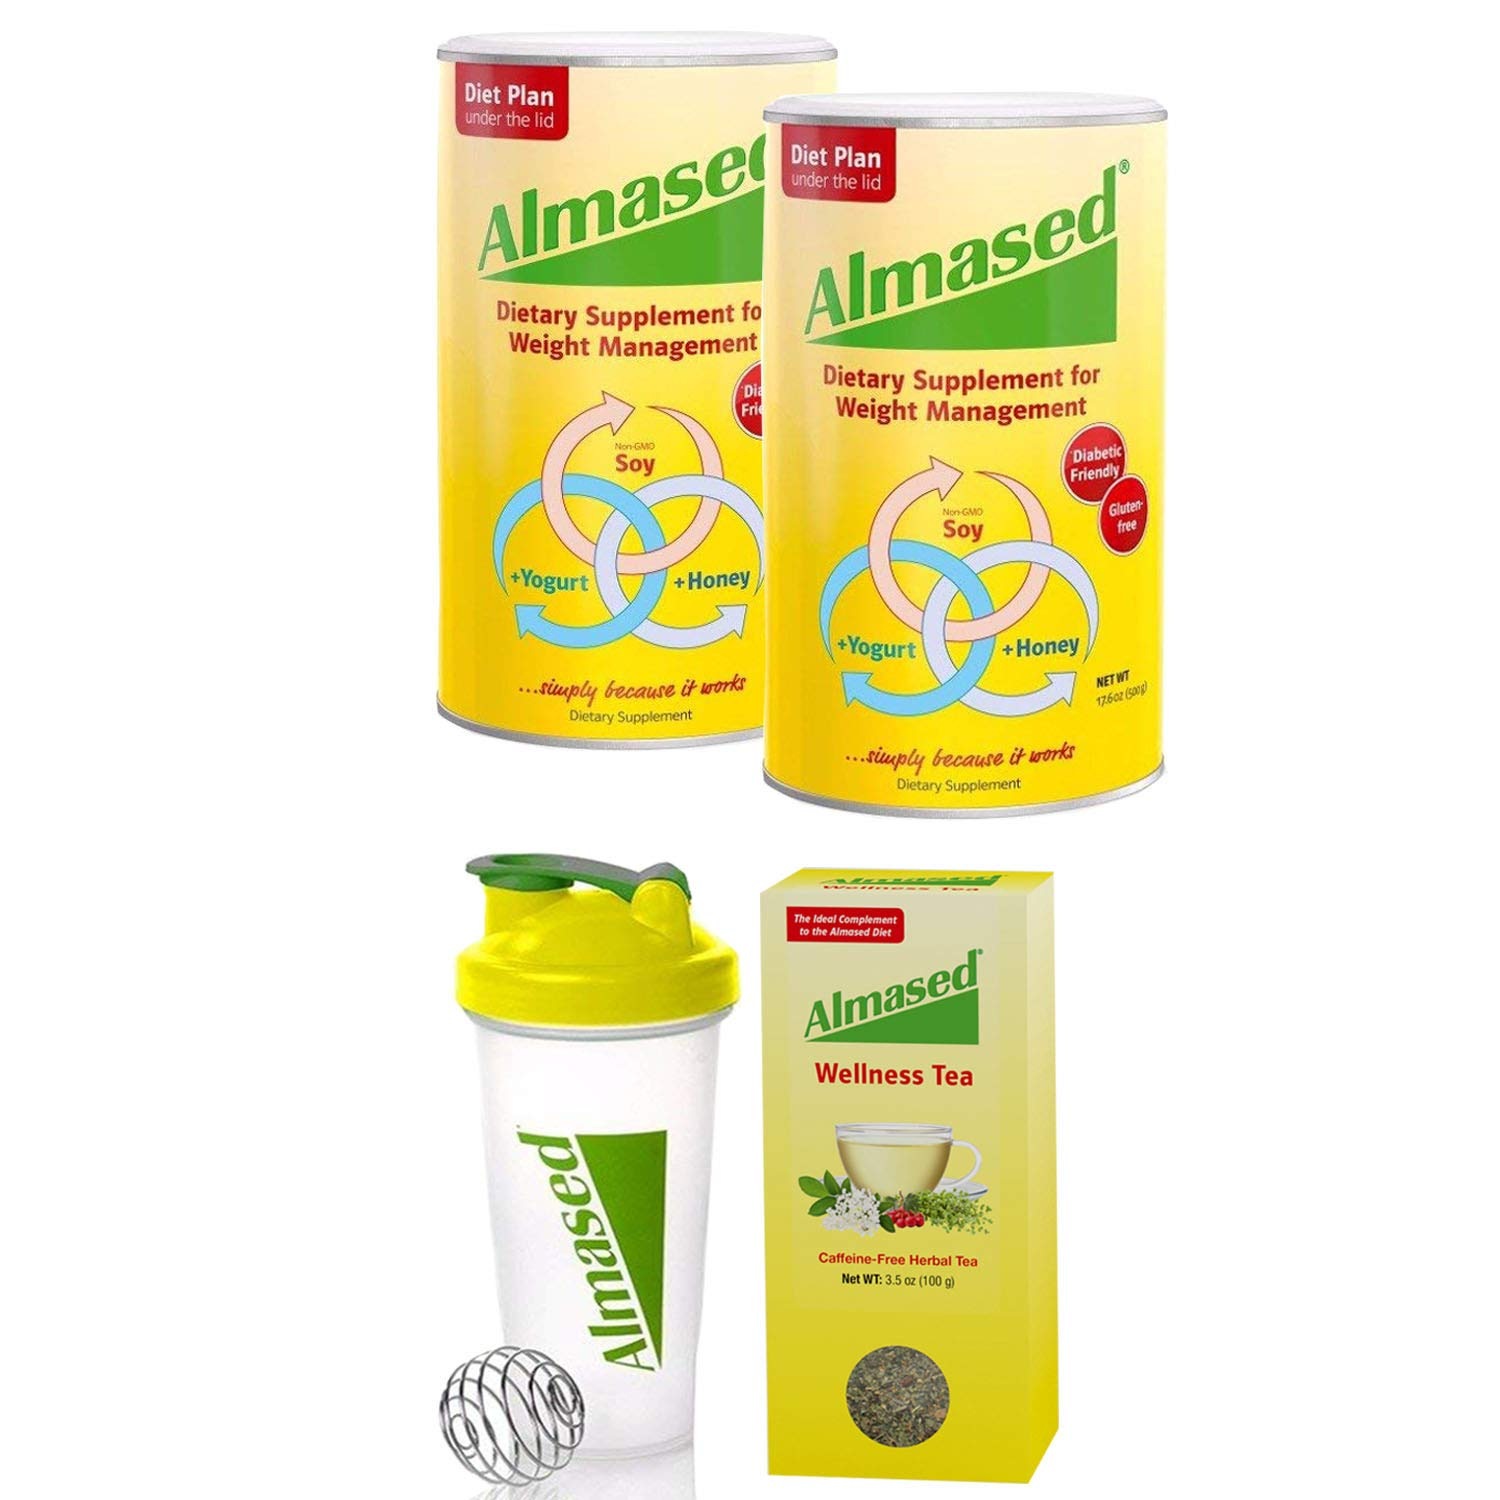 Almased® Meal Replacement Shakes -Soy Protein Powder for Weight Loss - Shake for Meal Replacement - Gluten Free, No Sugar Added (2 Pack + Free Shaker Bottle+ Almased® Wellness Tea) by Almased